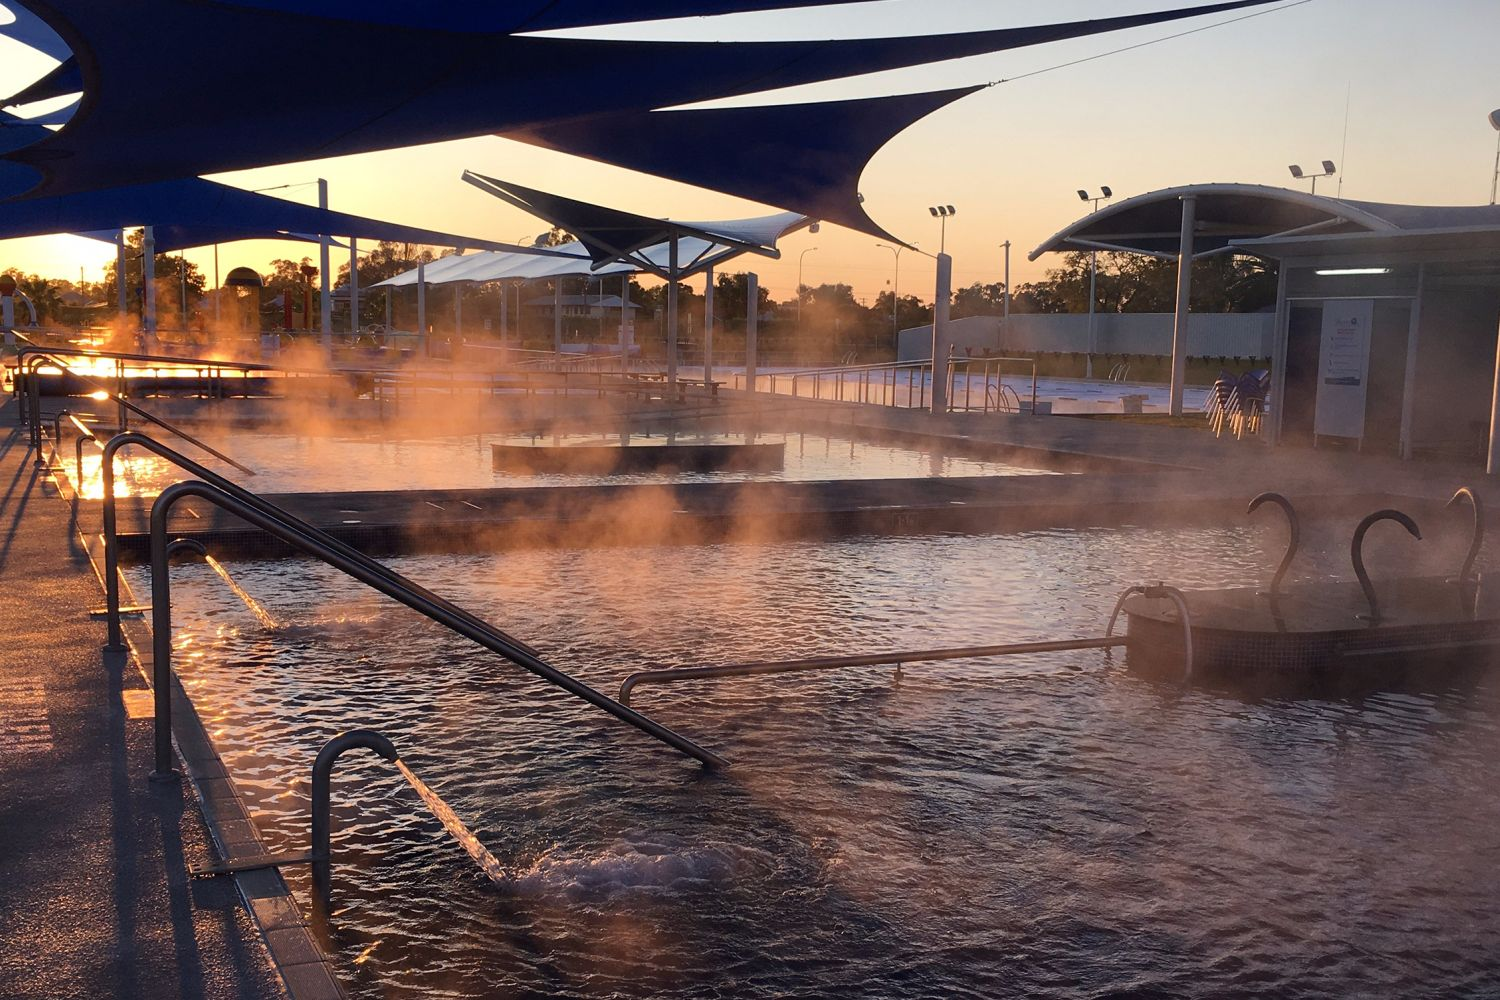 Dawn breaking at the Moree Artesian Aquatic Centre, northwest NSW